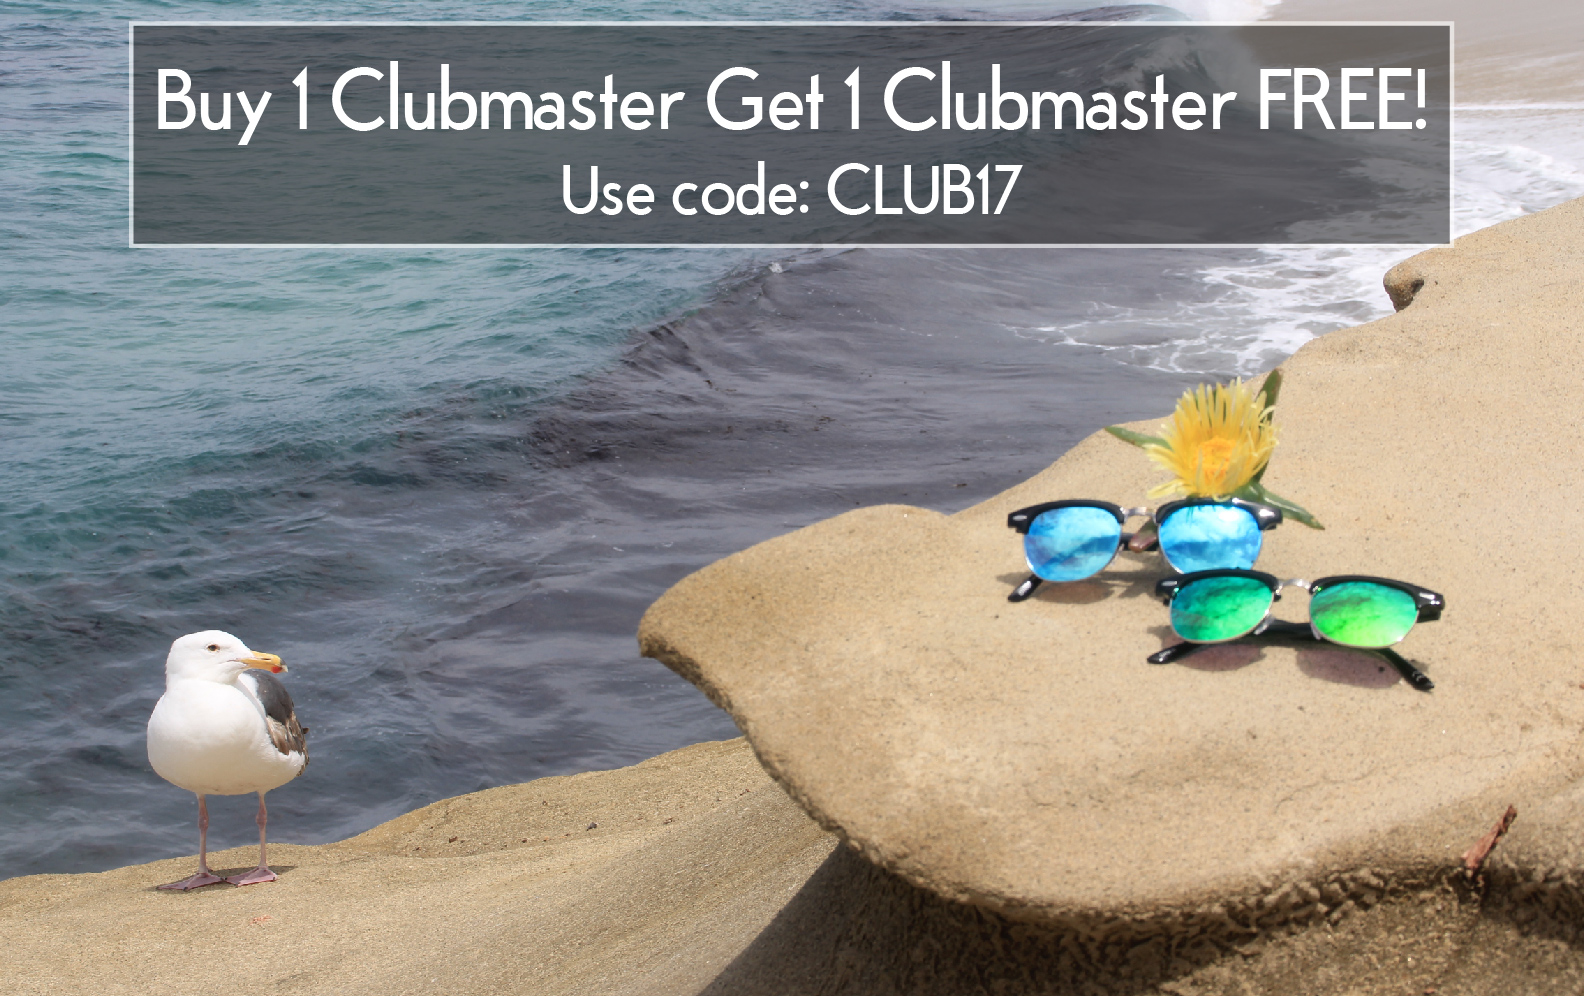 Clubmaster Offer